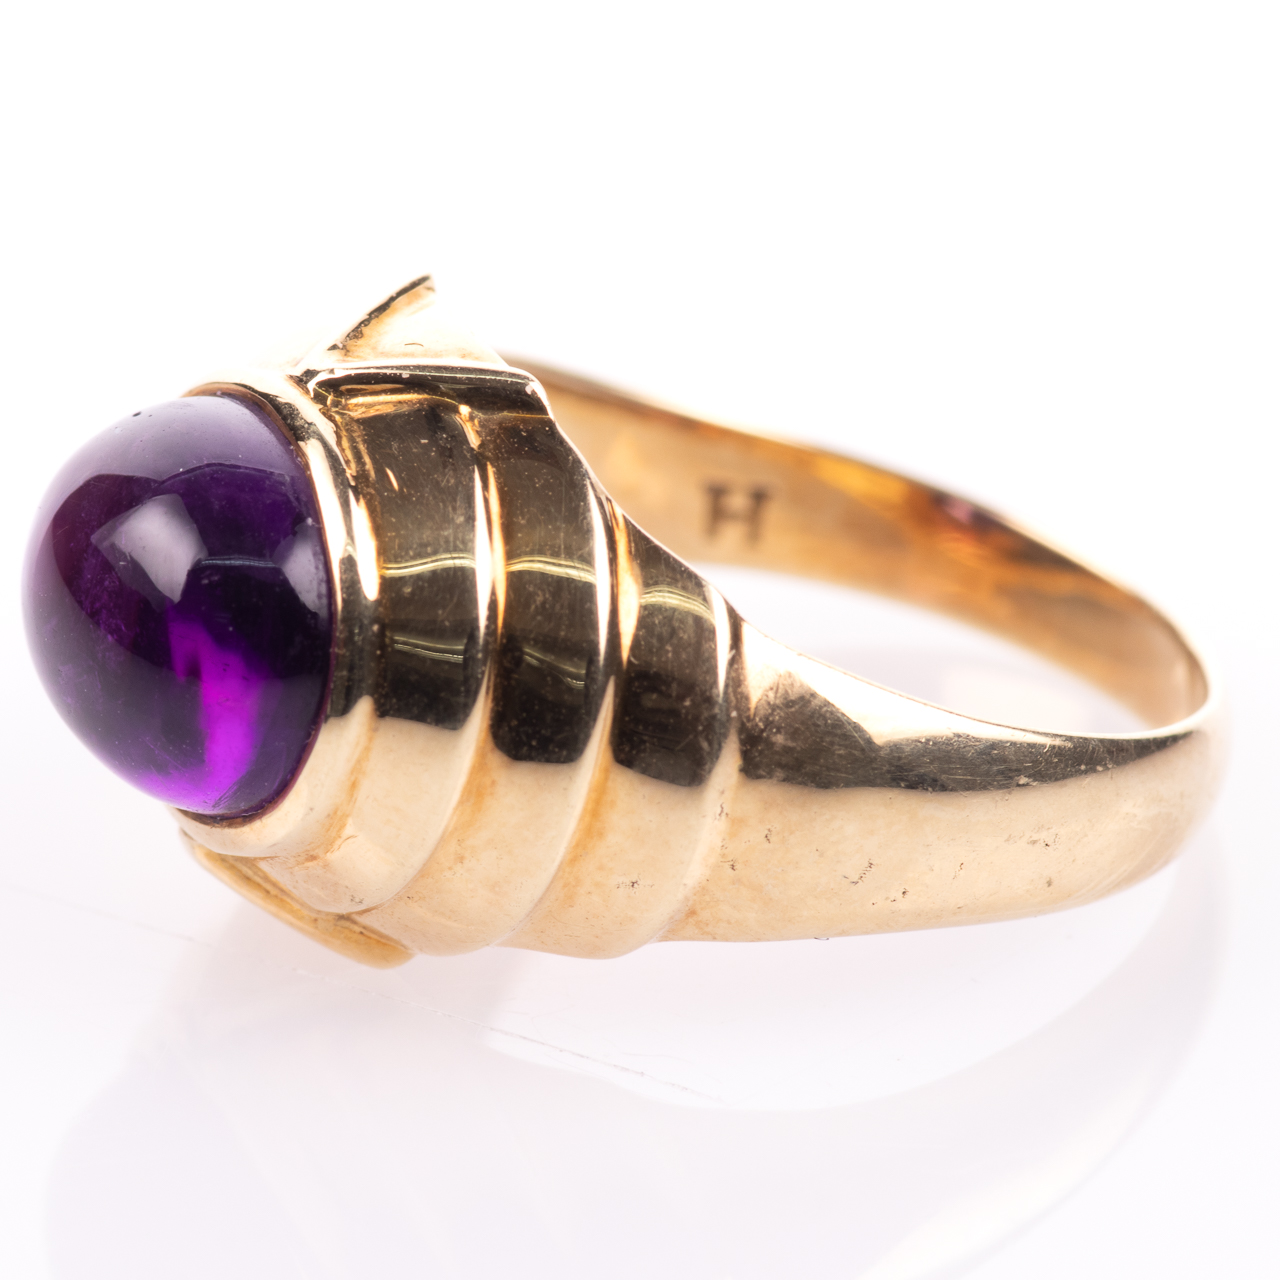 14ct Gold Amethyst Cabochon Ring Egyptian Revival Style - Image 4 of 9